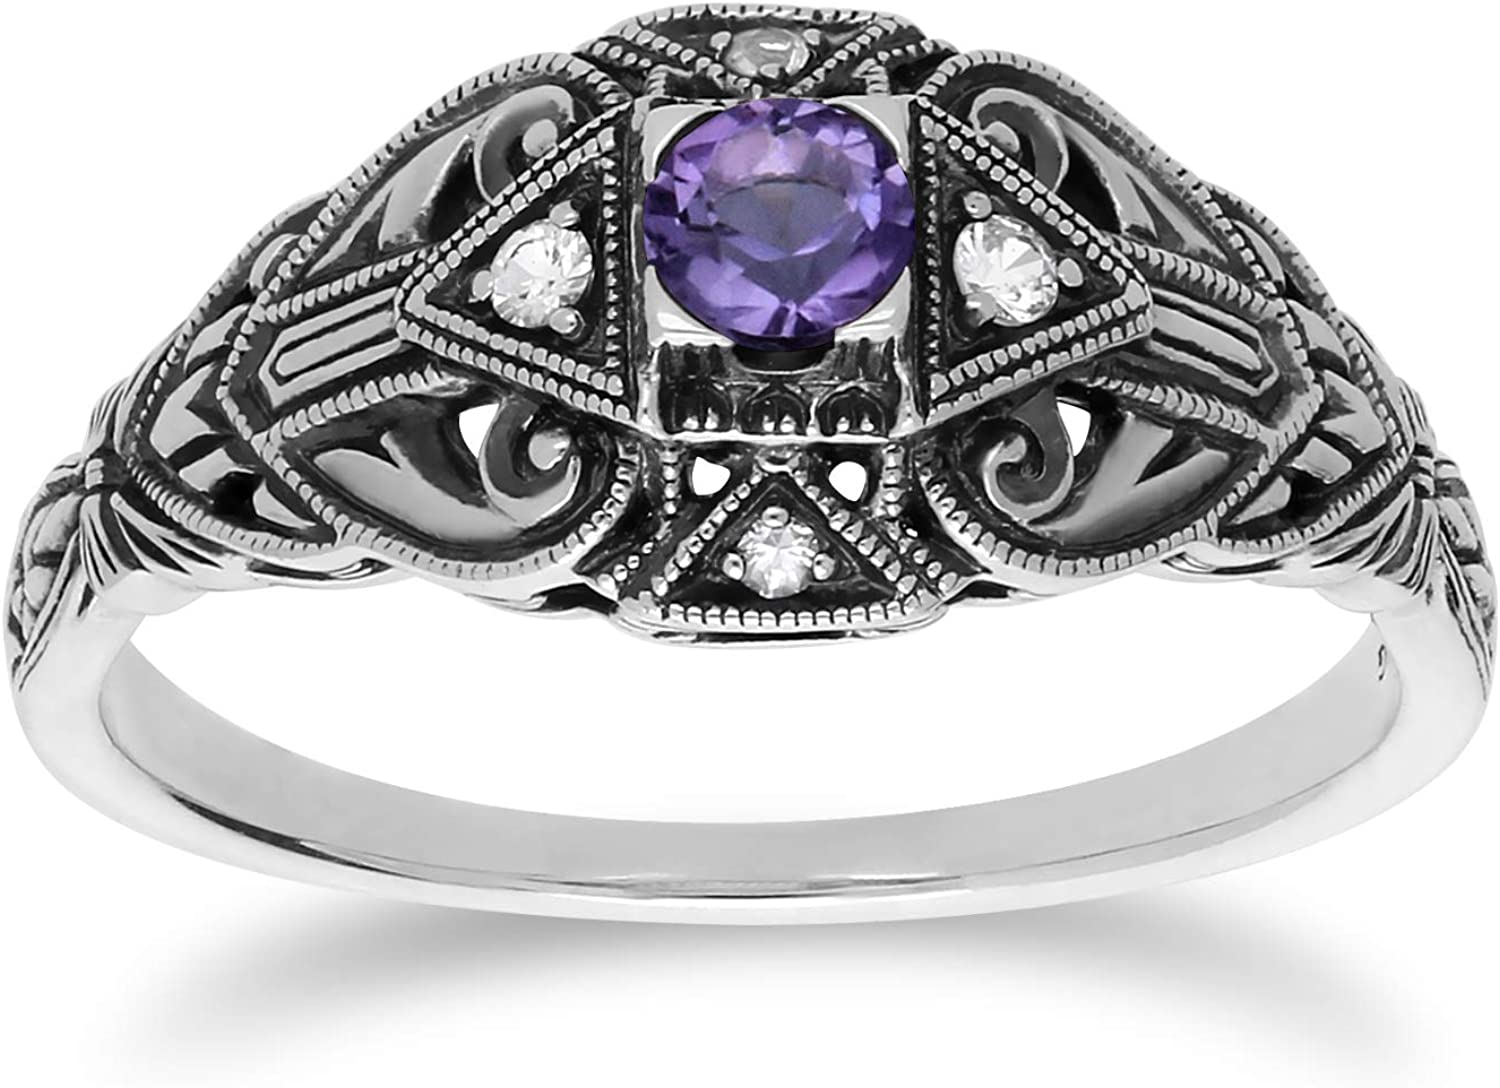 Ornate Mystic Topaz Solitaire 925 Sterling Silver Ring Size 6 7 8 9